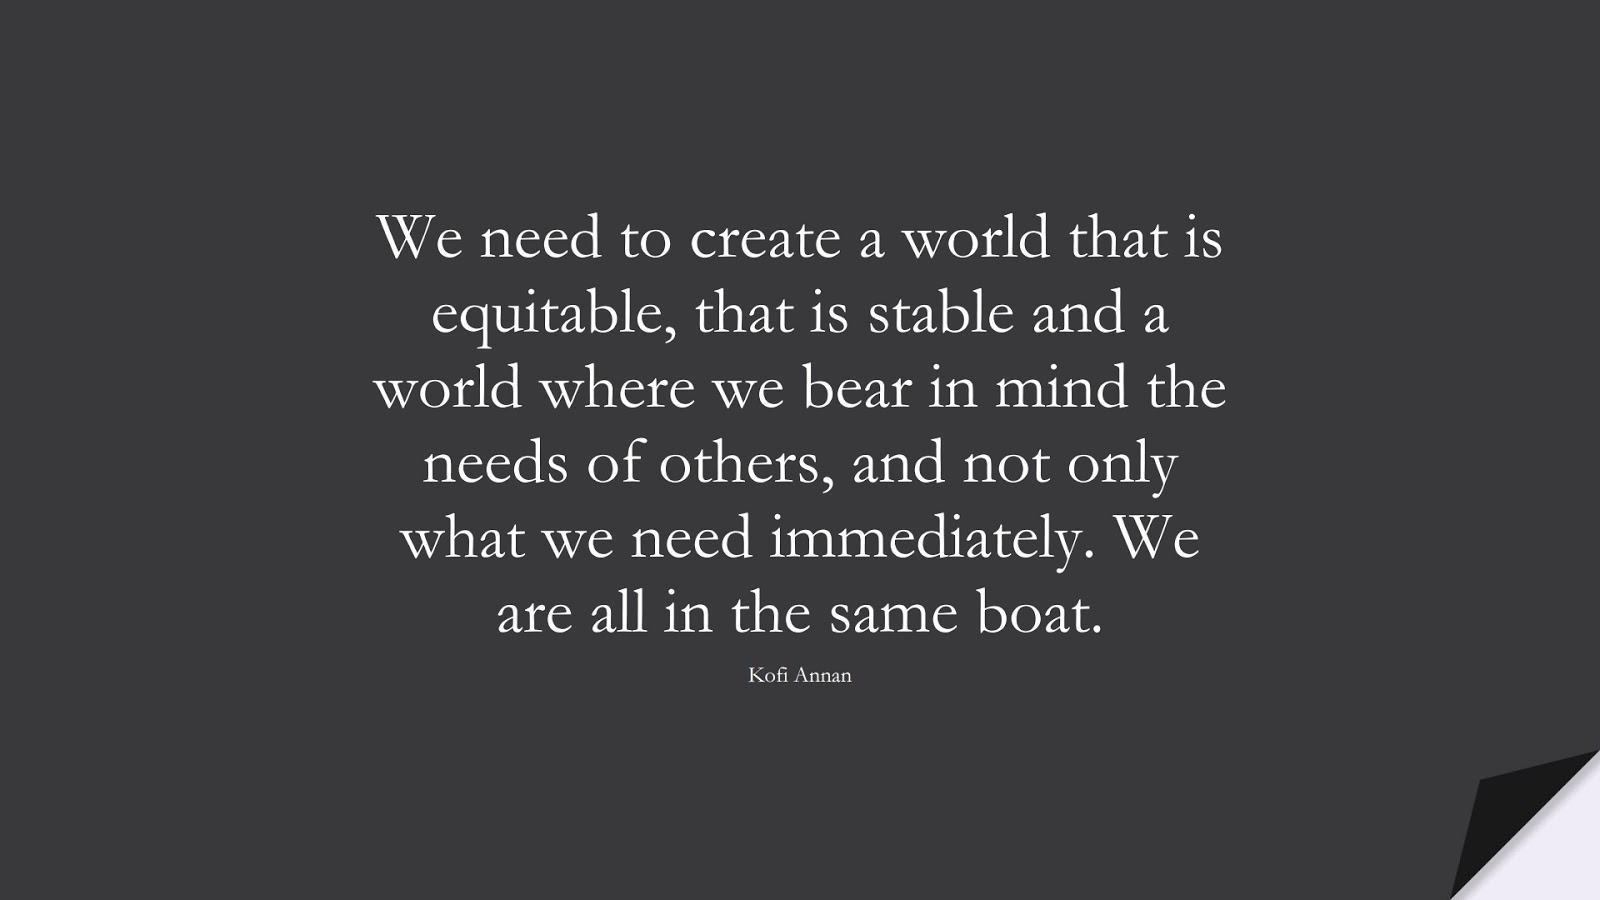 We need to create a world that is equitable, that is stable and a world where we bear in mind the needs of others, and not only what we need immediately. We are all in the same boat. (Kofi Annan);  #HumanityQuotes